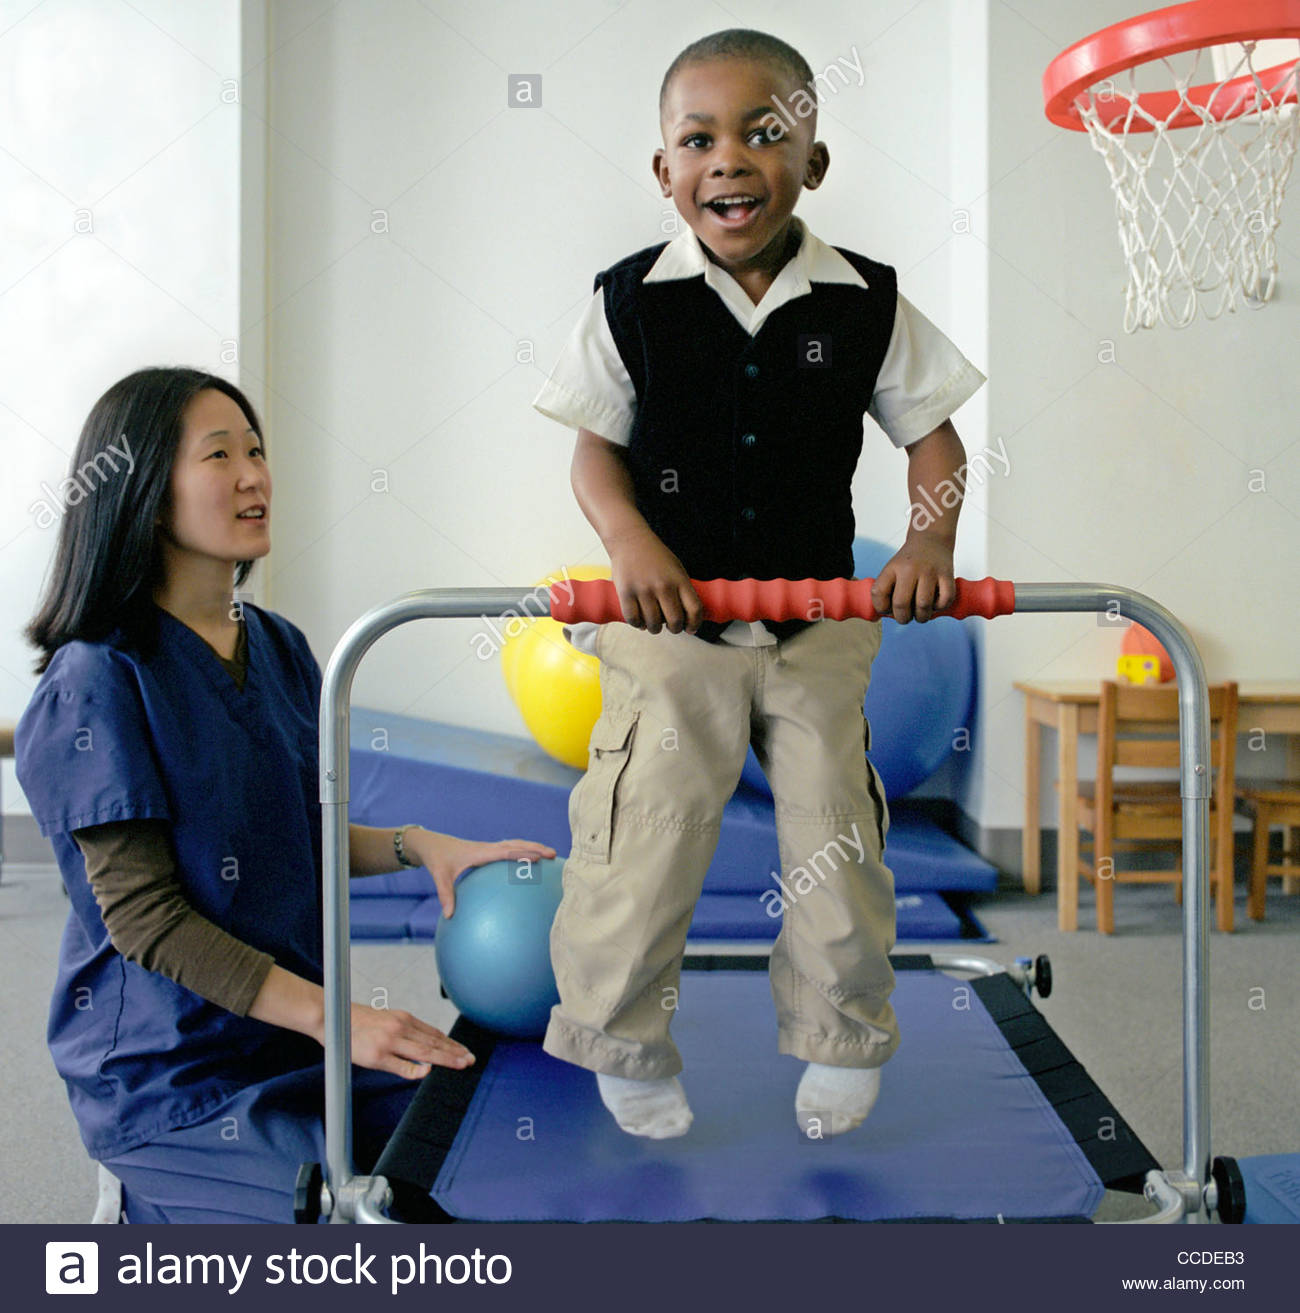 A young male child patient is helped by a physical therapist in the Rehabitation Department in a hospital. - Stock Image